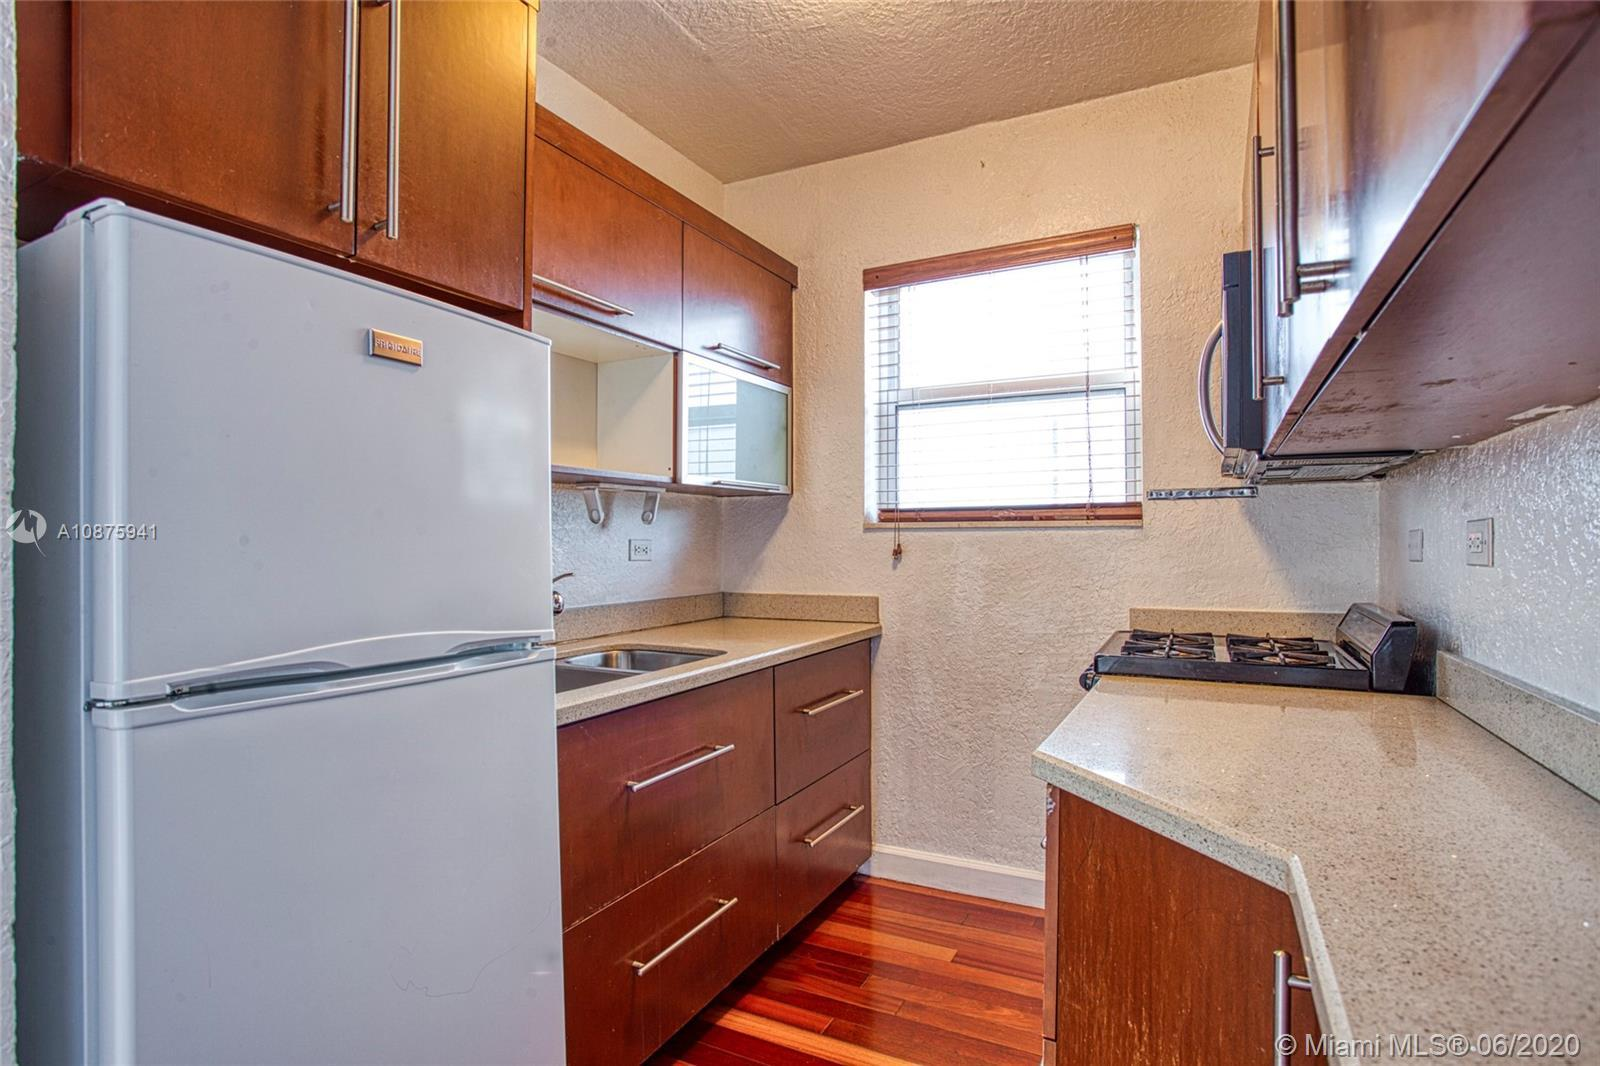 7334 Harding Ave Unit: 8 preview